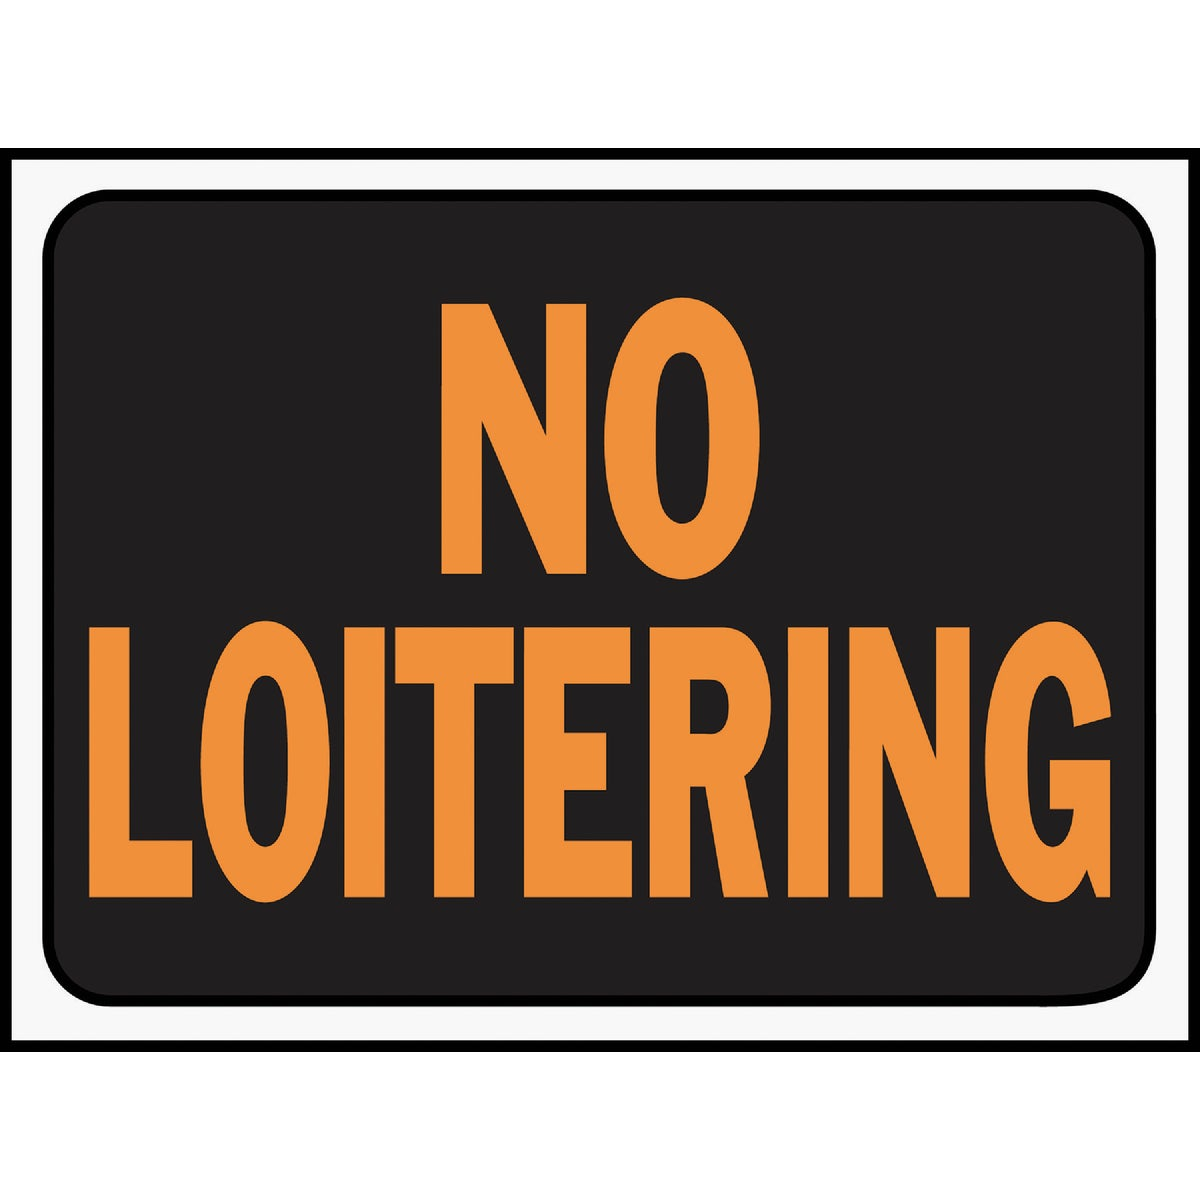 9X12 NO LOITERING SIGN - 3036 by Hy Ko Prods Co